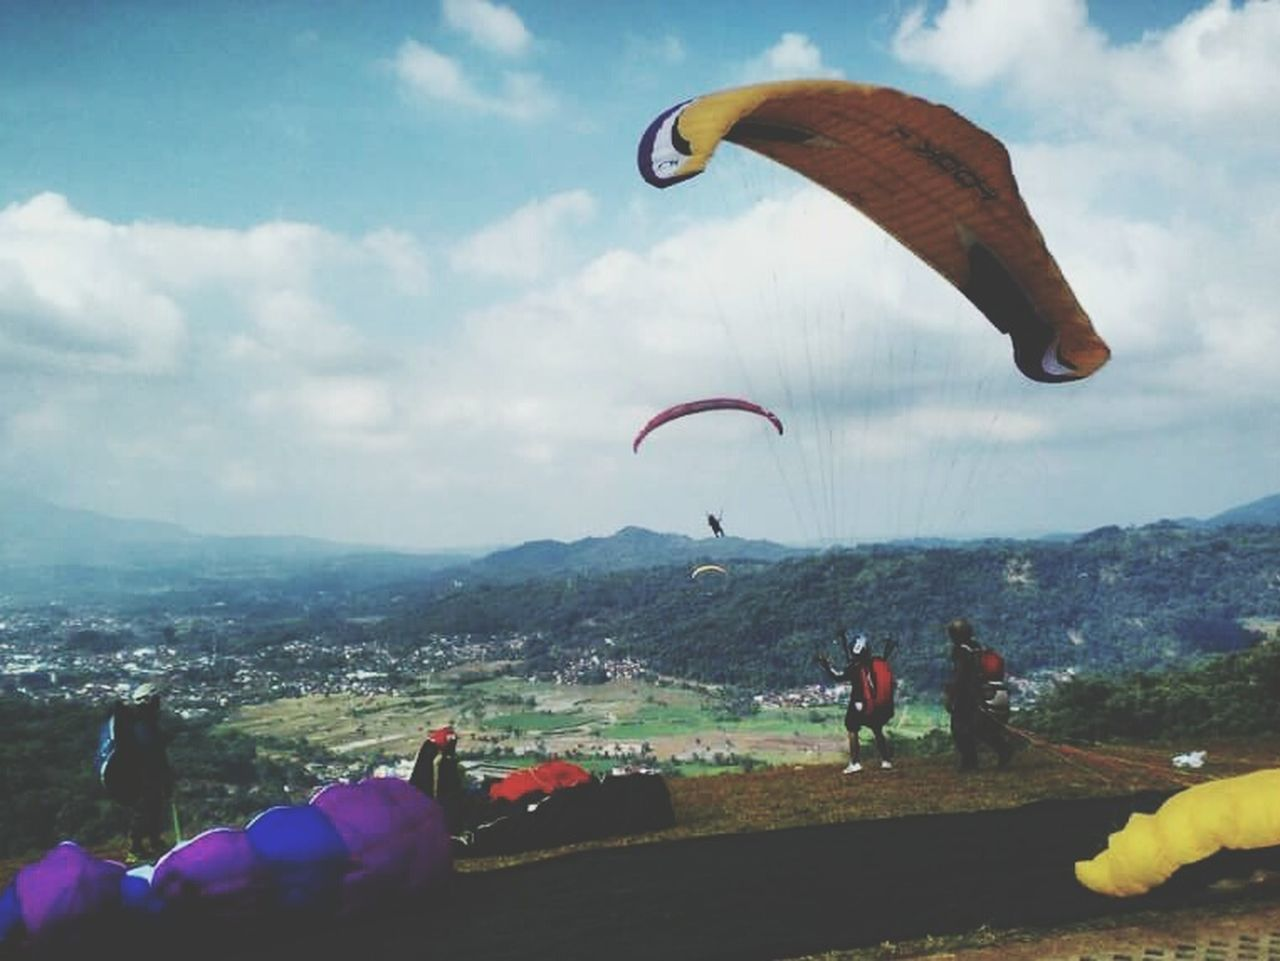 parachute, paragliding, extreme sports, real people, adventure, leisure activity, sky, lifestyles, mid-air, gliding, outdoors, flying, men, one person, day, mountain, landscape, cloud - sky, sport, nature, skydiving, full length, beauty in nature, people